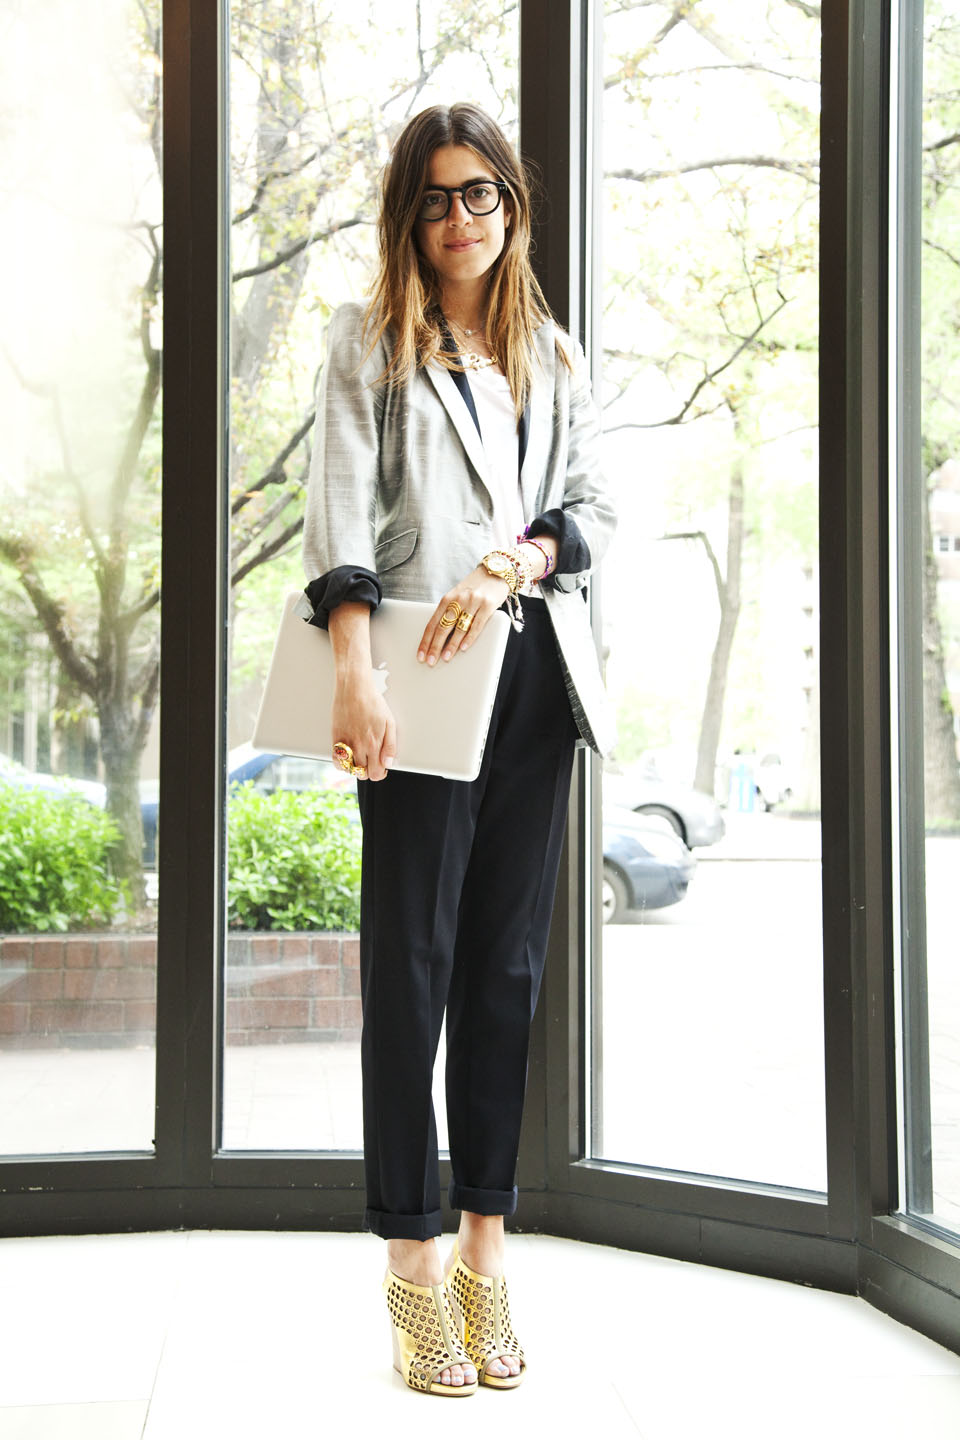 thematic repelling job interview chic man repeller thematic repelling job interview chic